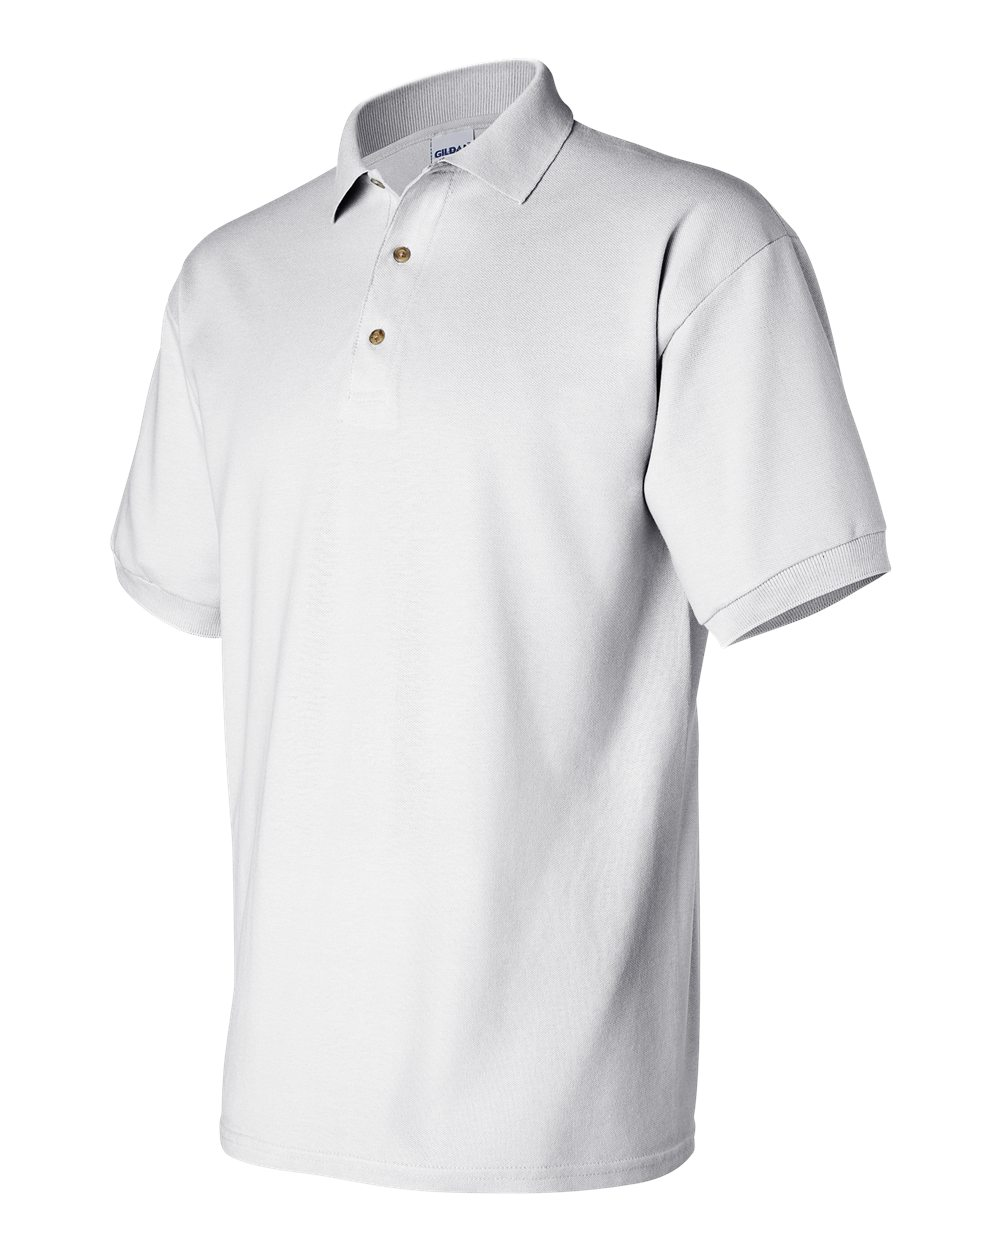 Gildan 3800 Ultra Cotton Ringspun Pique Sport Shirt Friendly